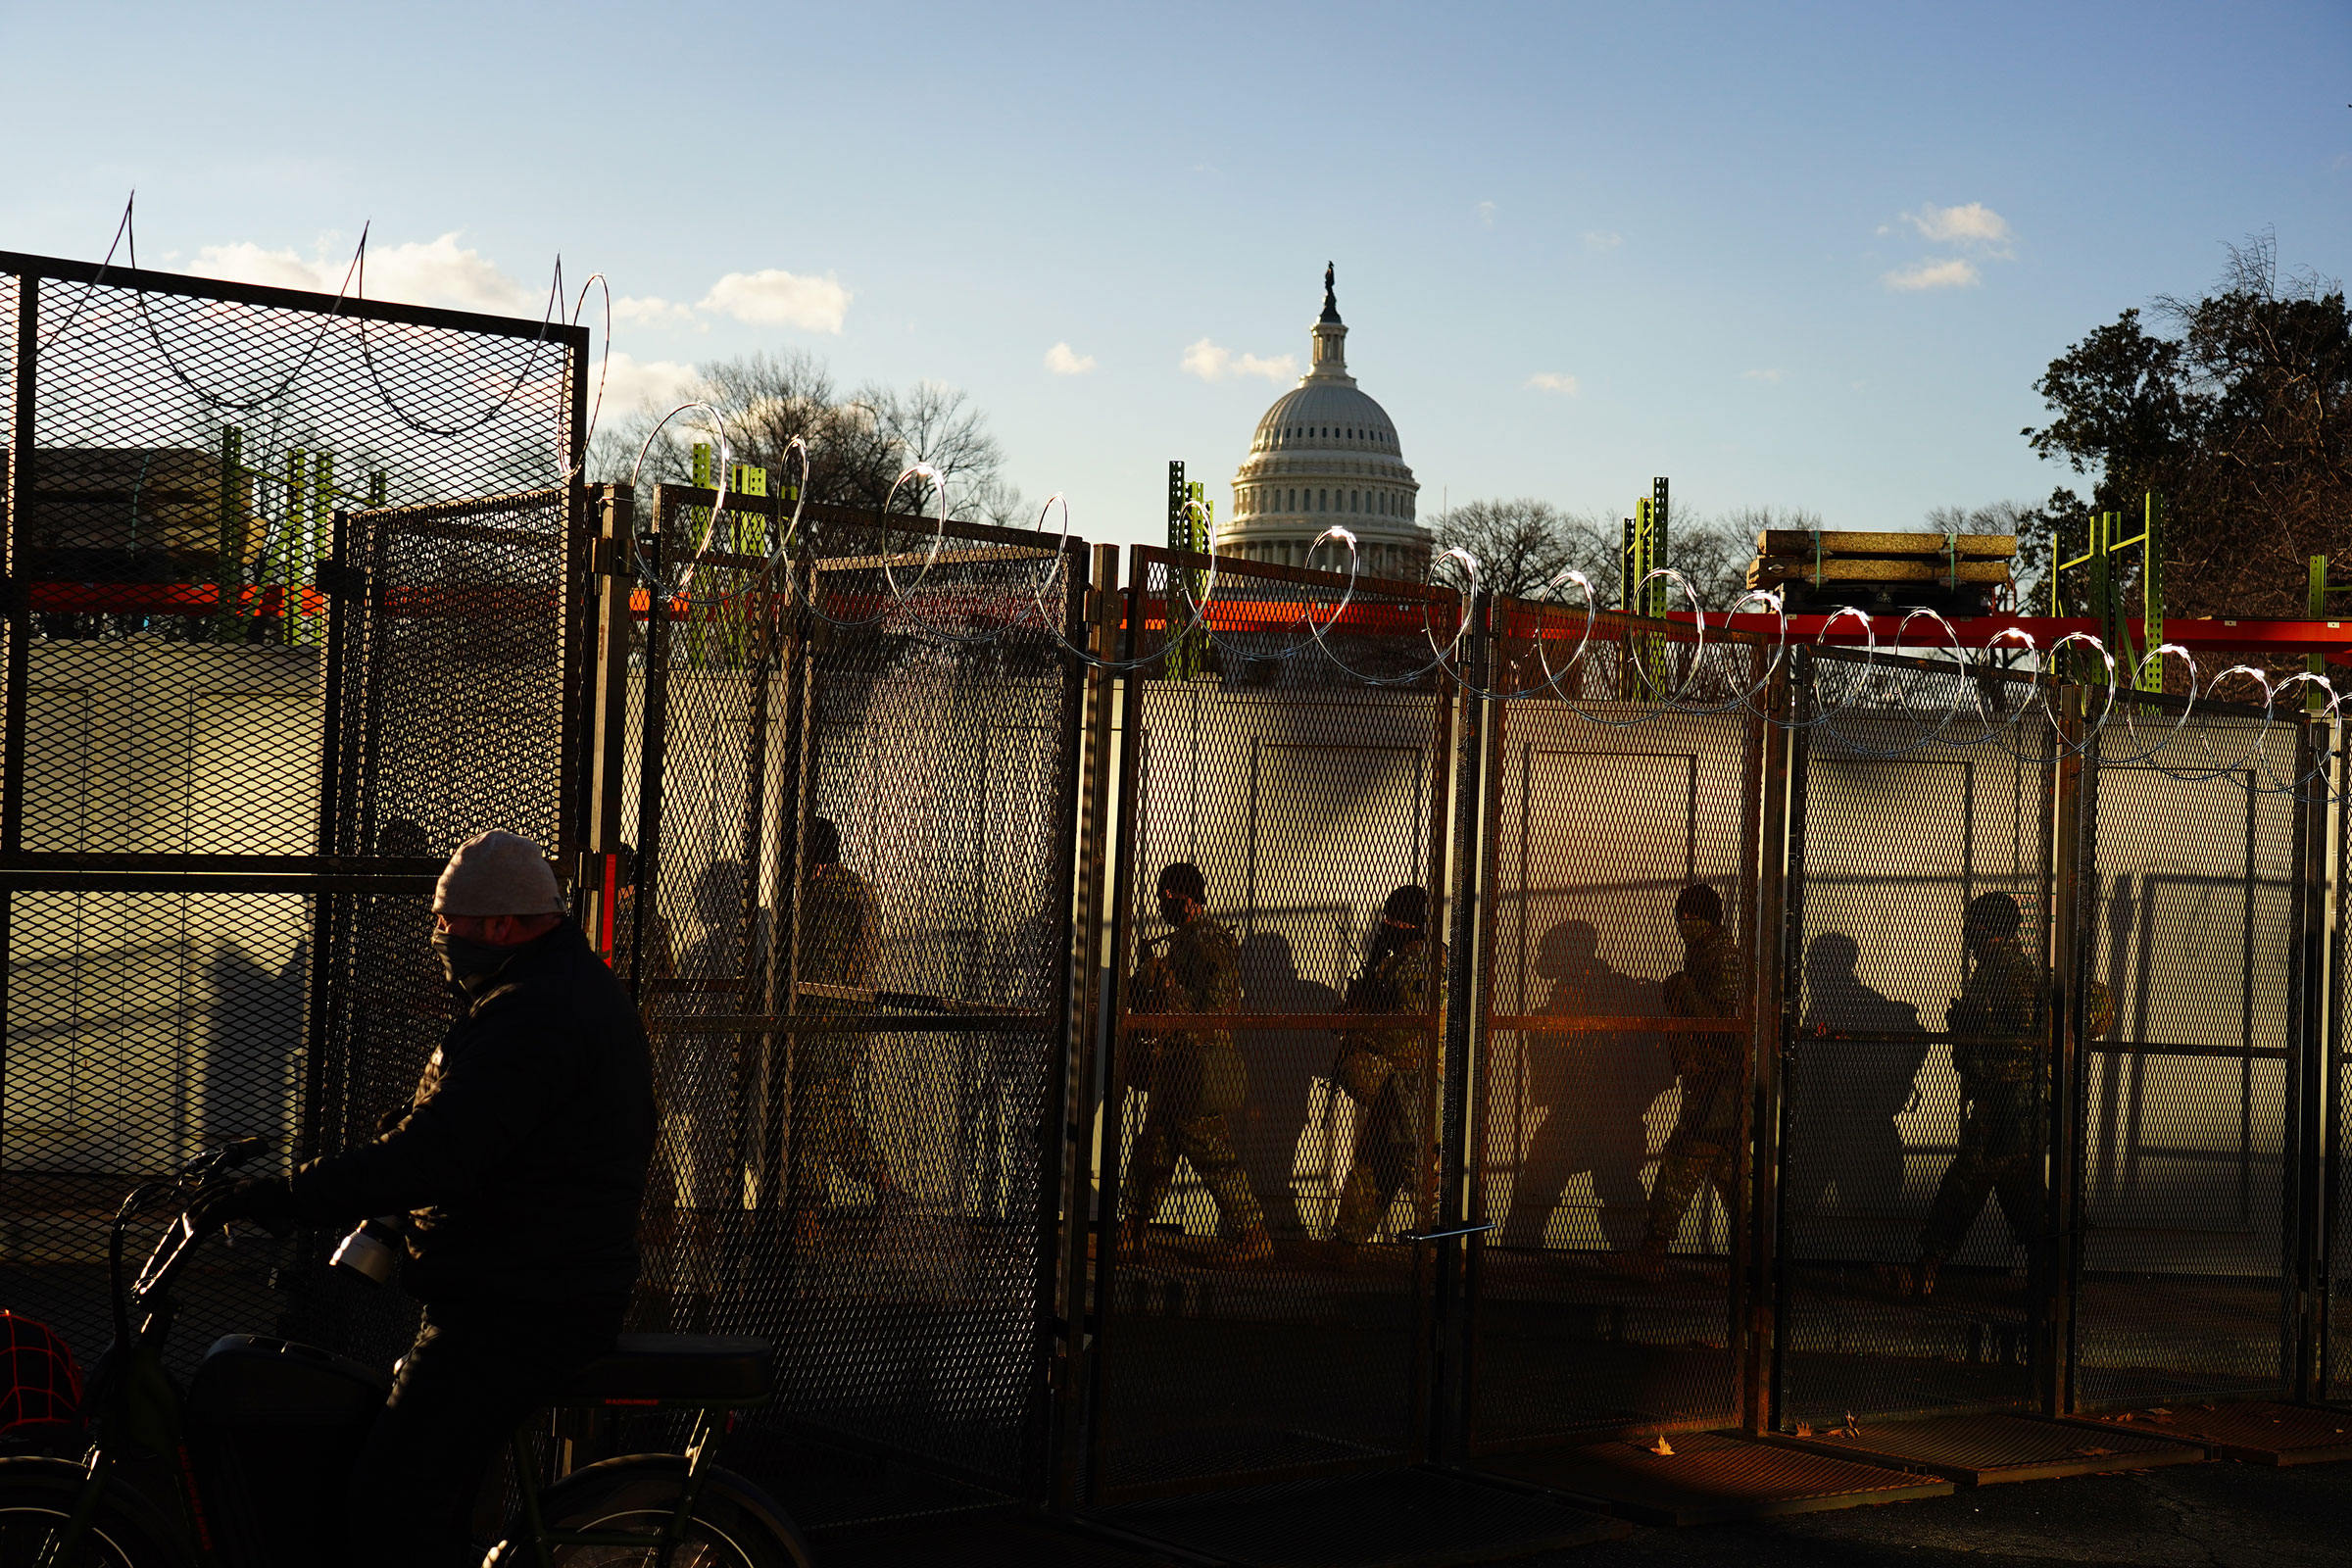 Security and fencing in front of the U.S. Capitol building prior to the start inauguration.